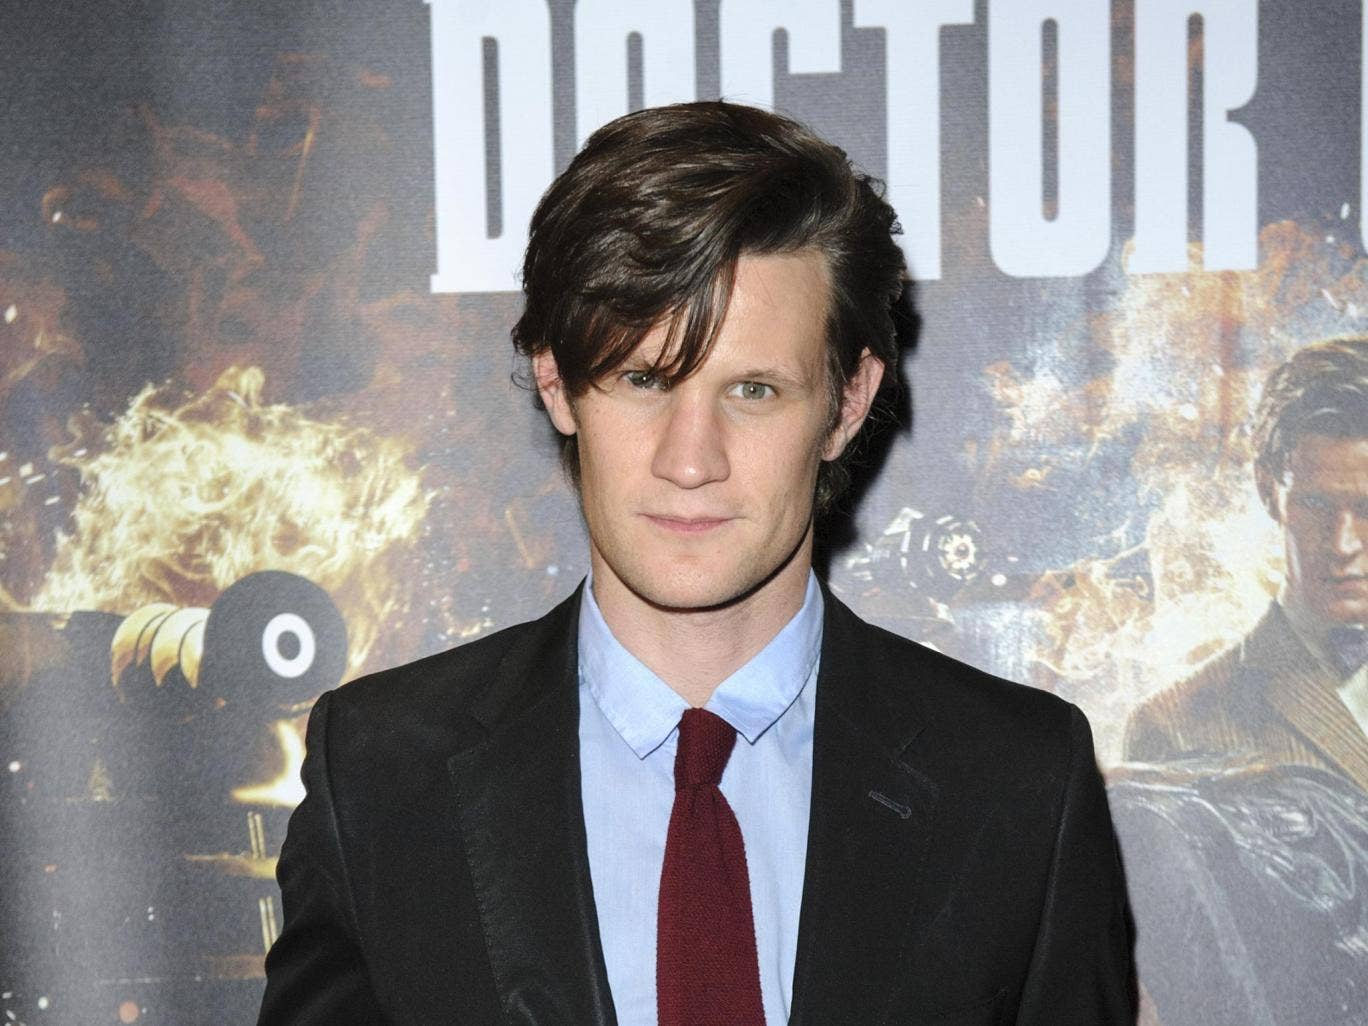 Matt Smith will be starring in the film of 'The Terminator' franchise